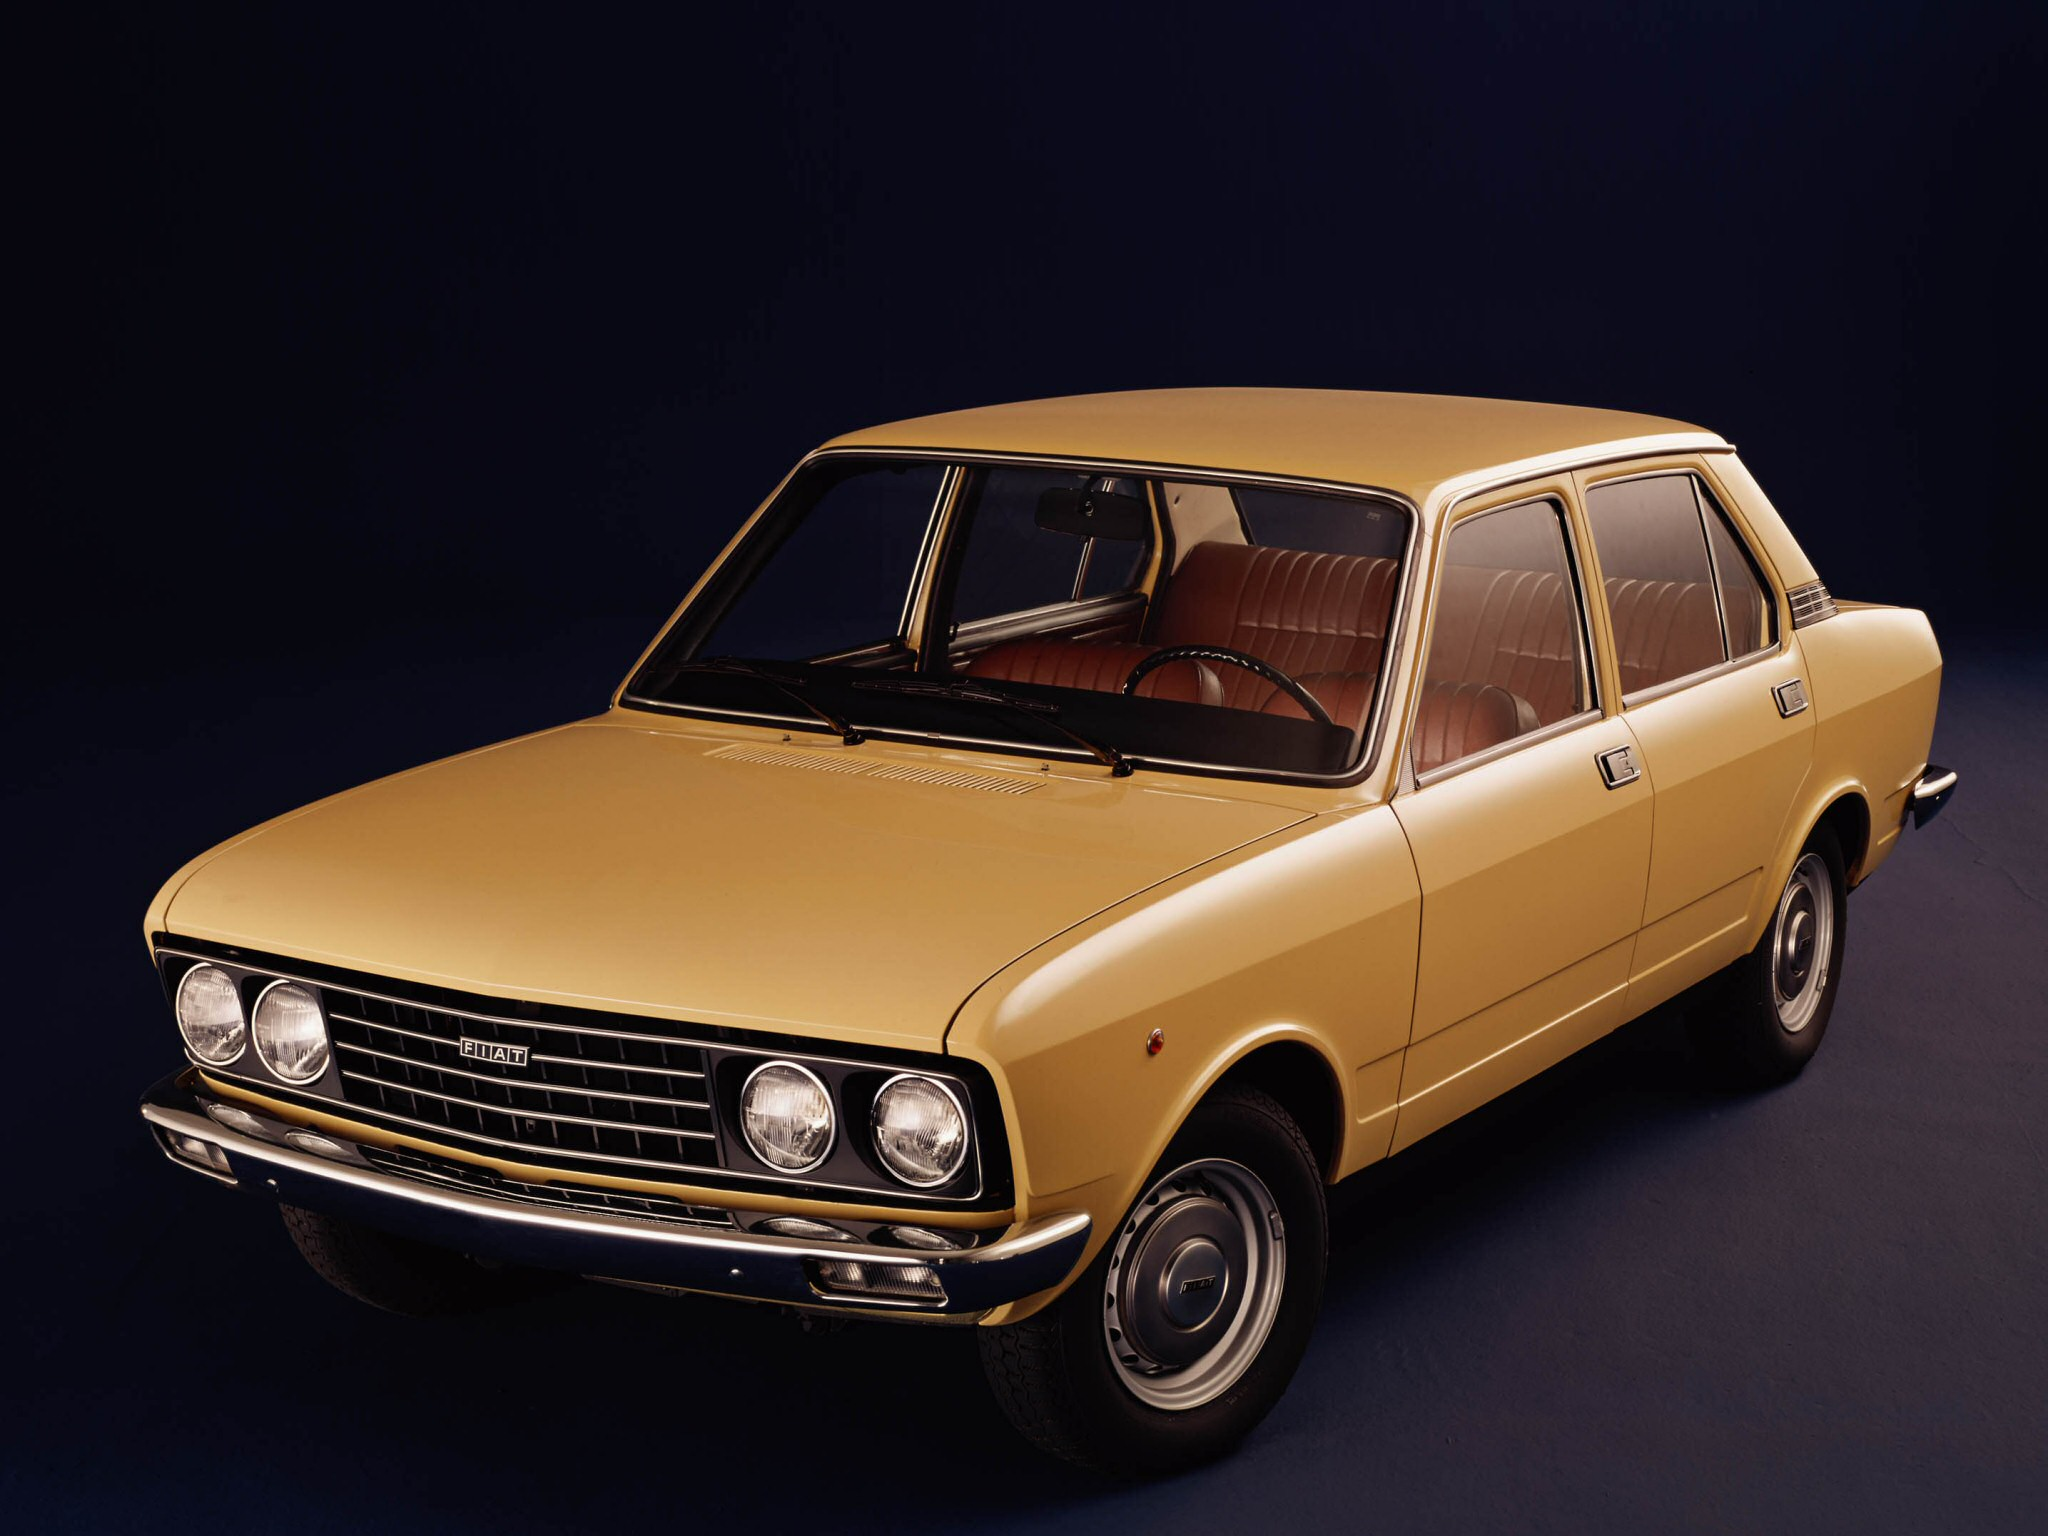 1978 Fiat 132 2000i Carsaddiction Com